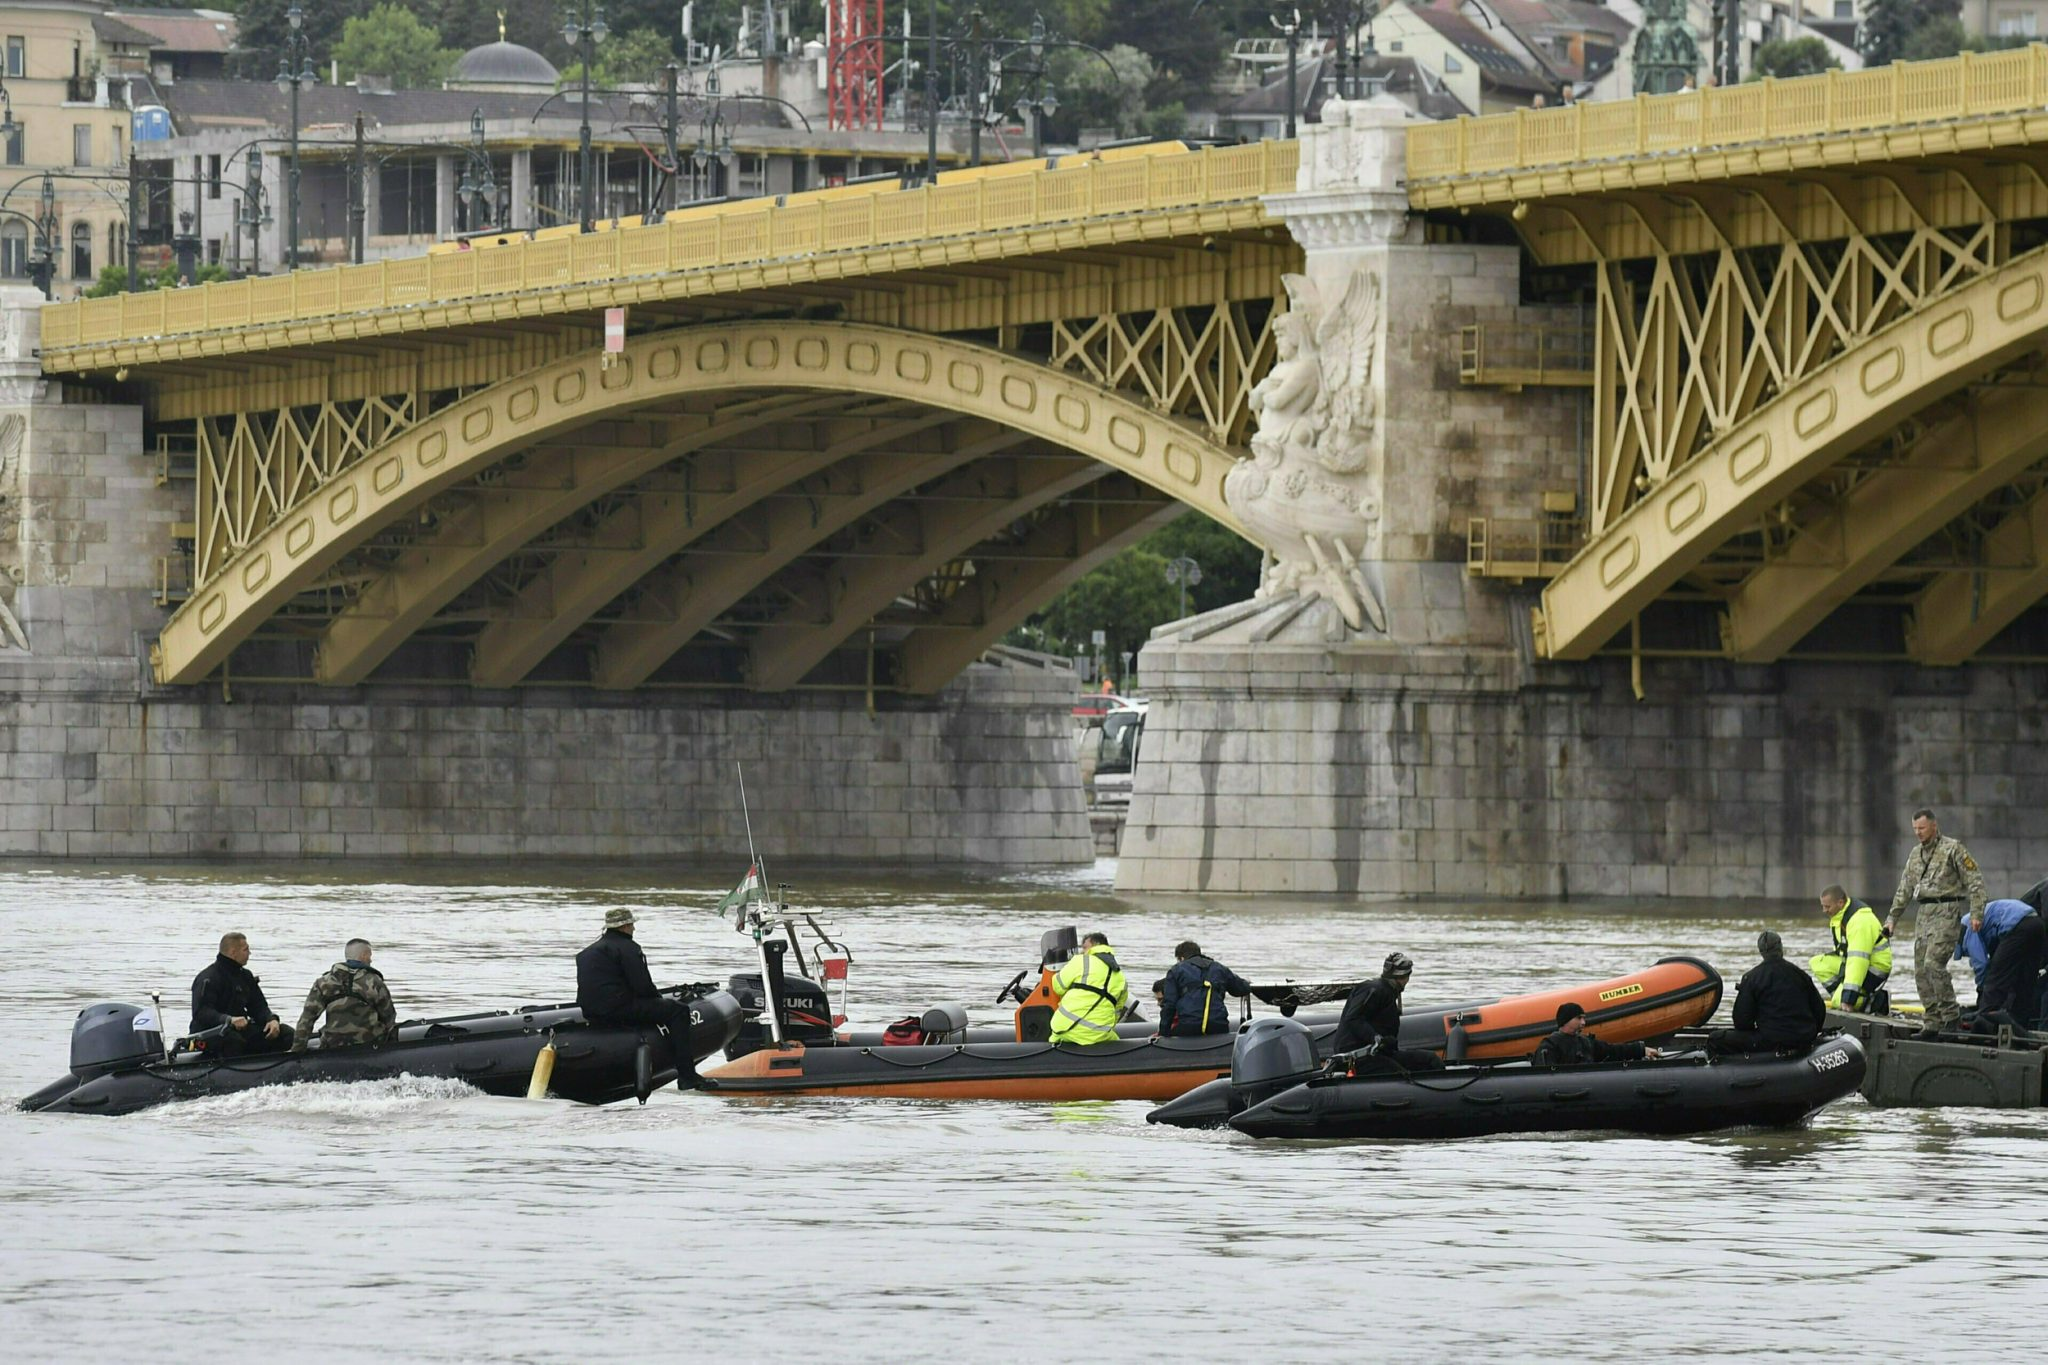 S. Korean Survivors Recall Chaos After Budapest Boat Sinking